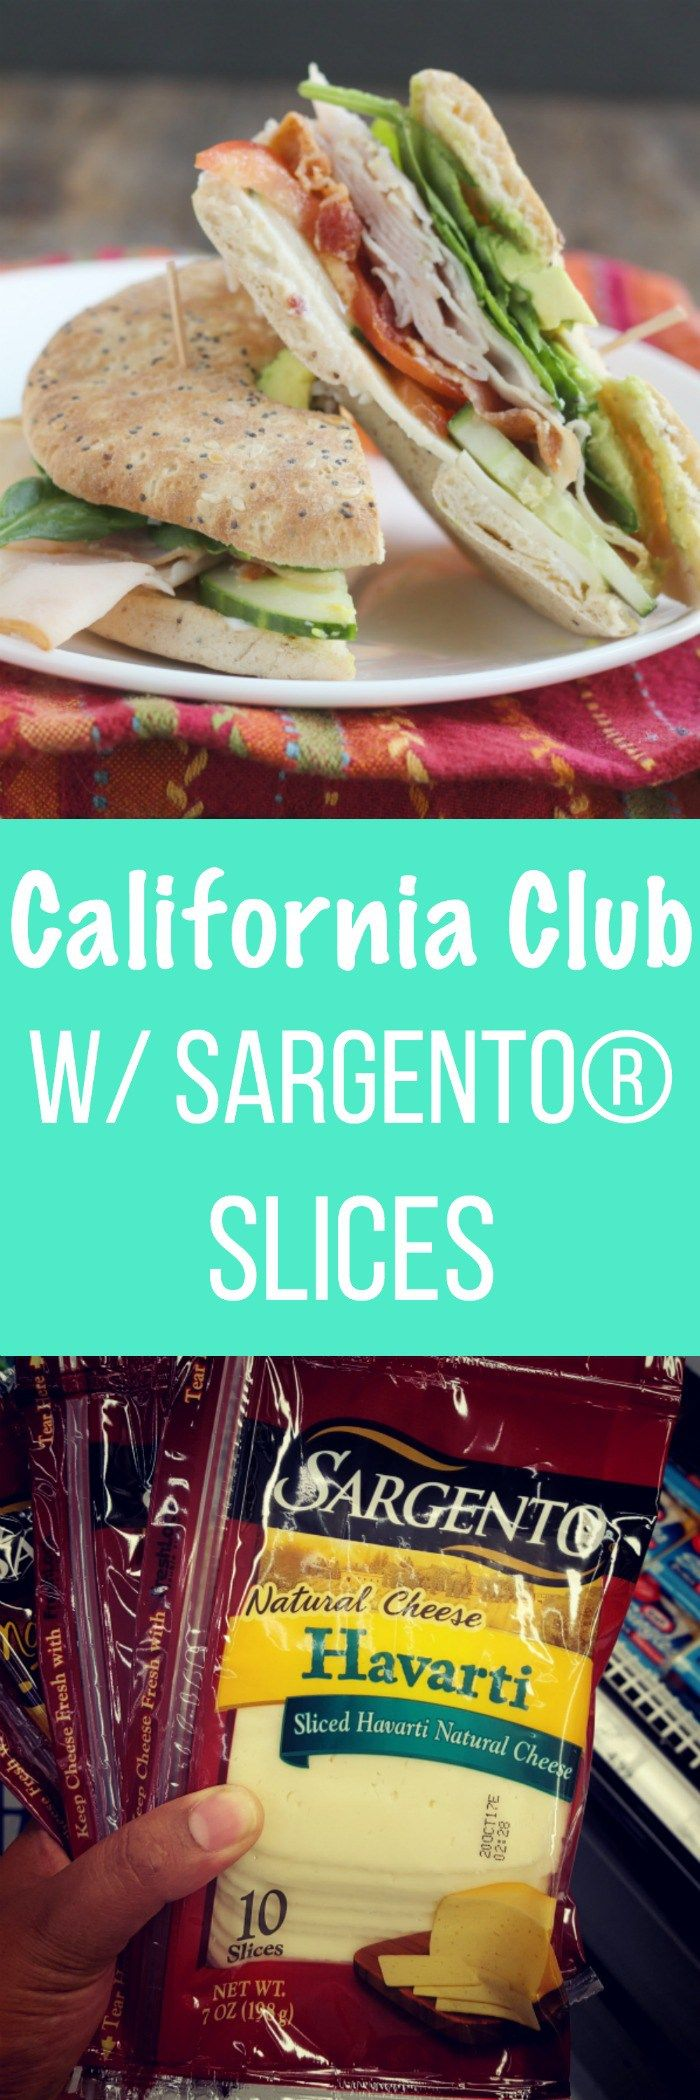 Simple sandwiches are the perfect snack or lunch during the summer...and the kids can help make them! This Cali Club with Sargento Havarti cheese is perfect! #AD via @DashOfEvans   #SargentoAtMeijer #IC